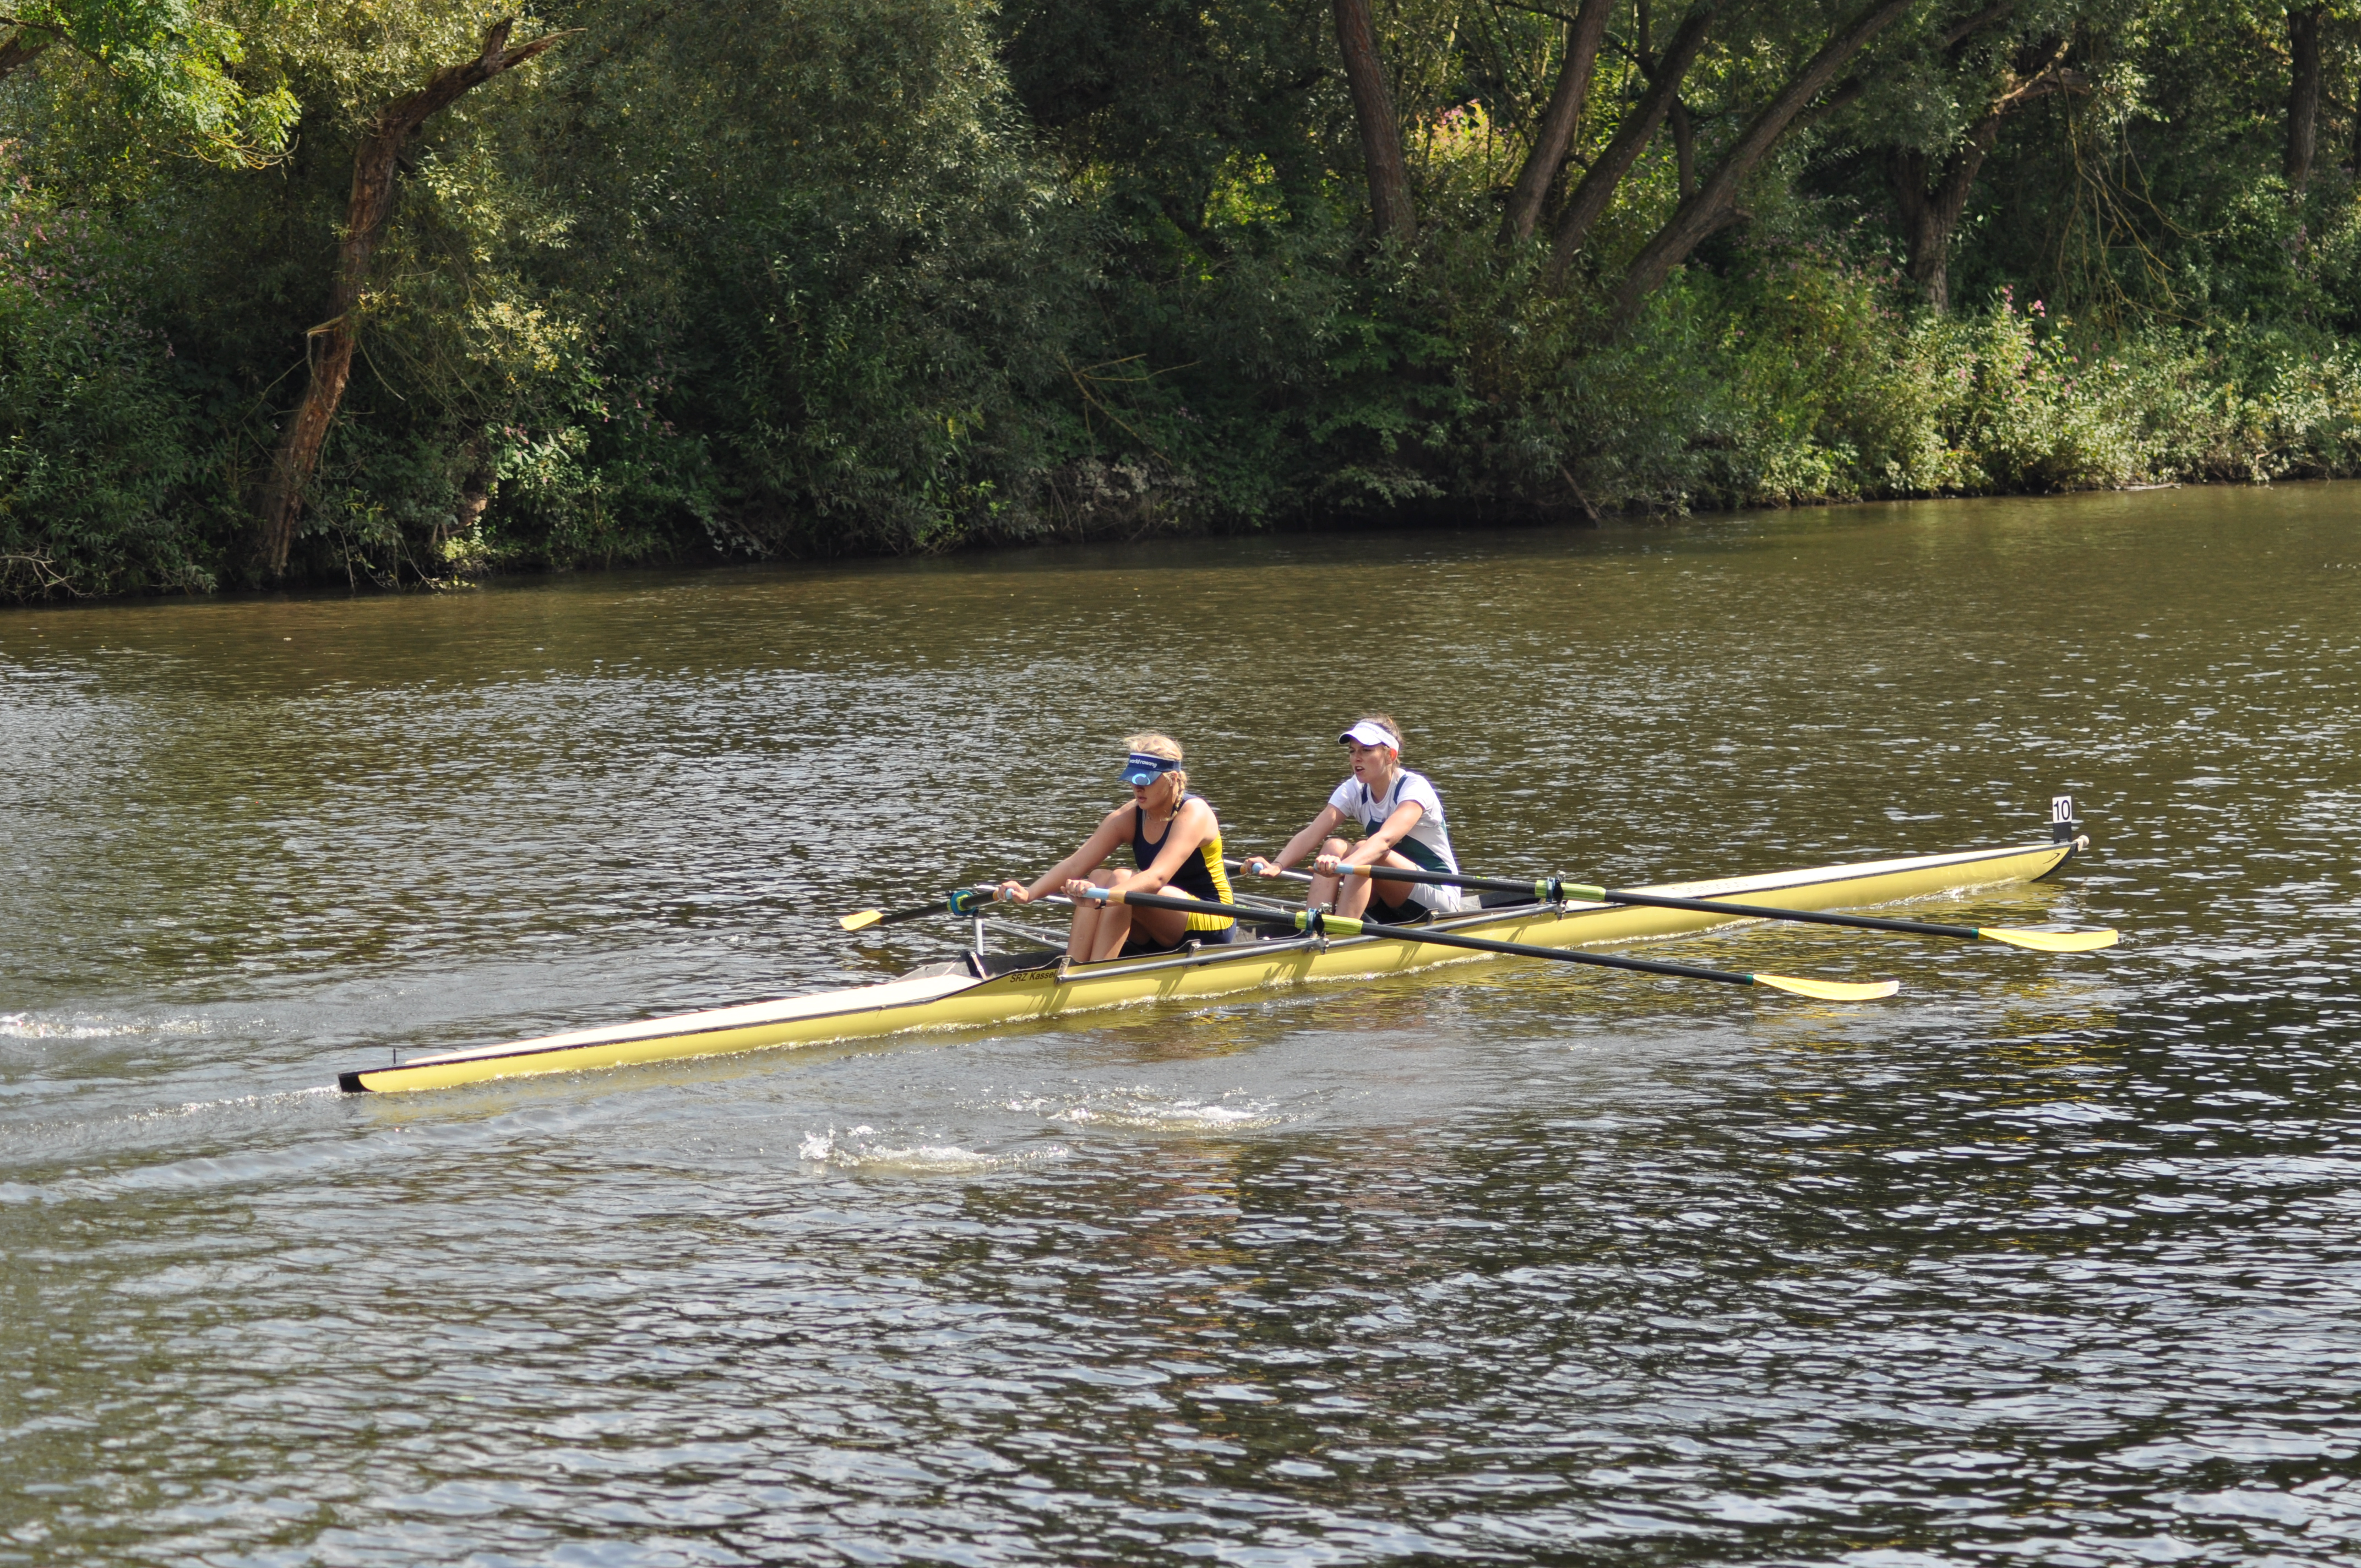 2017-09-02-Regatta-Limburg-4